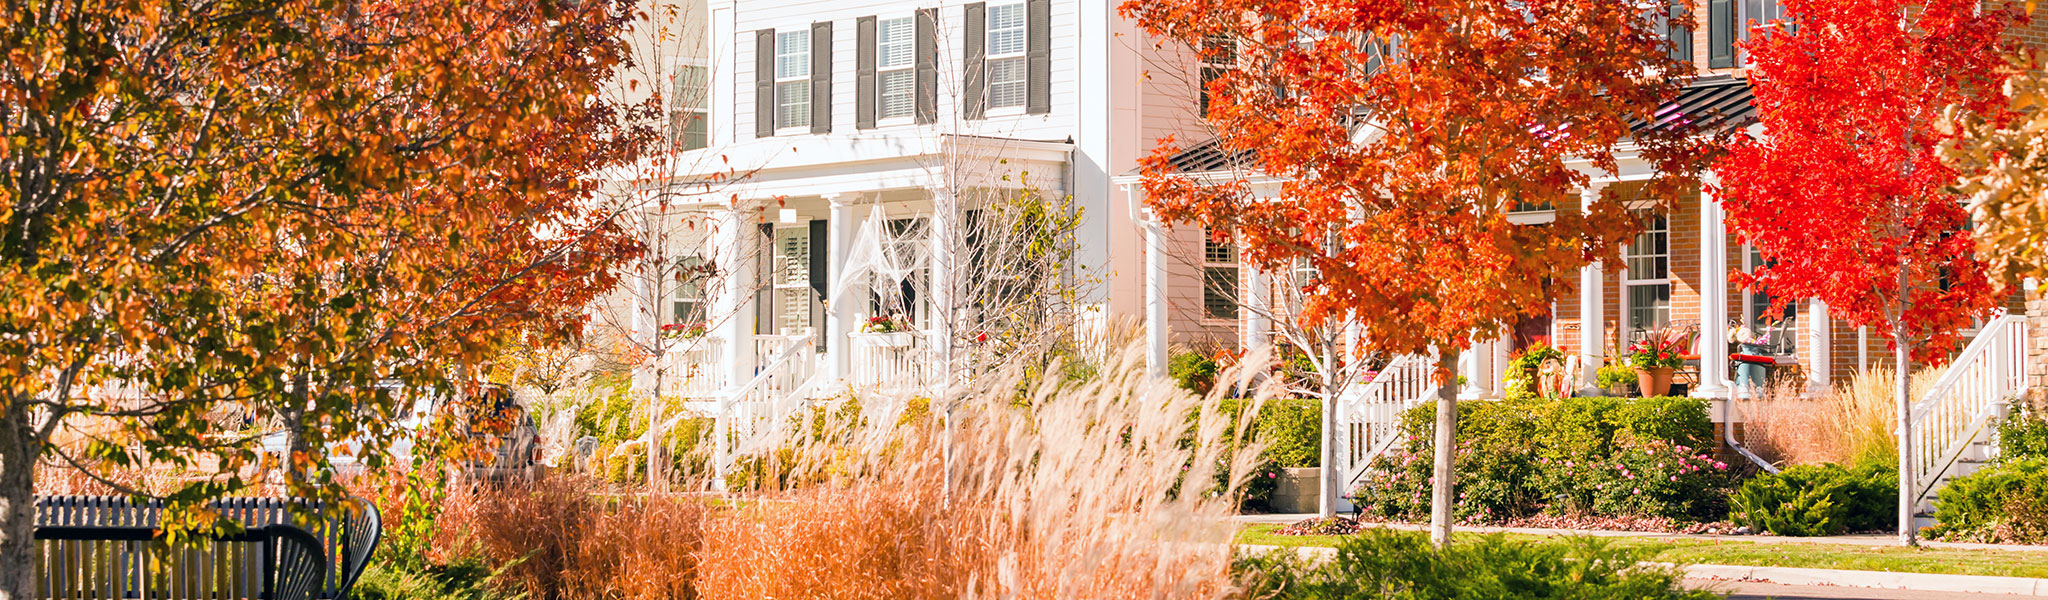 image showcasing residential homes in fall with red and orange trees in front.